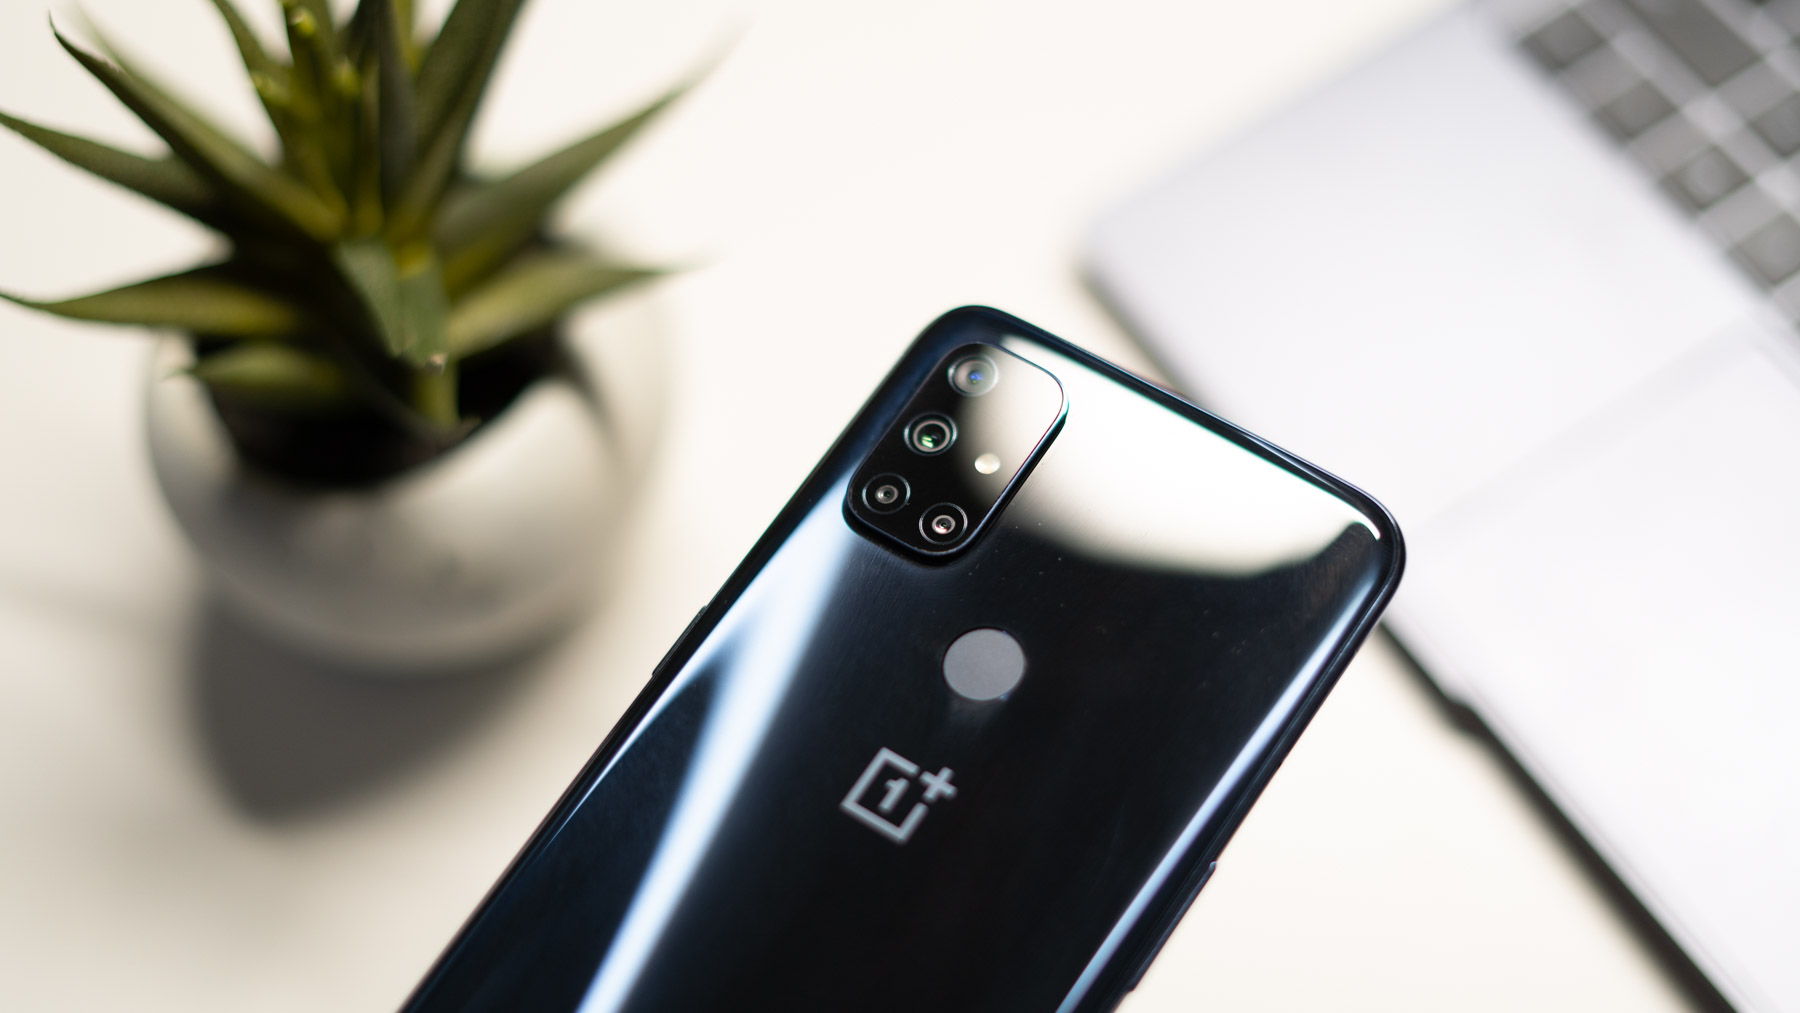 The cheap OnePlus Nord smartphones are proving naysayers wrong